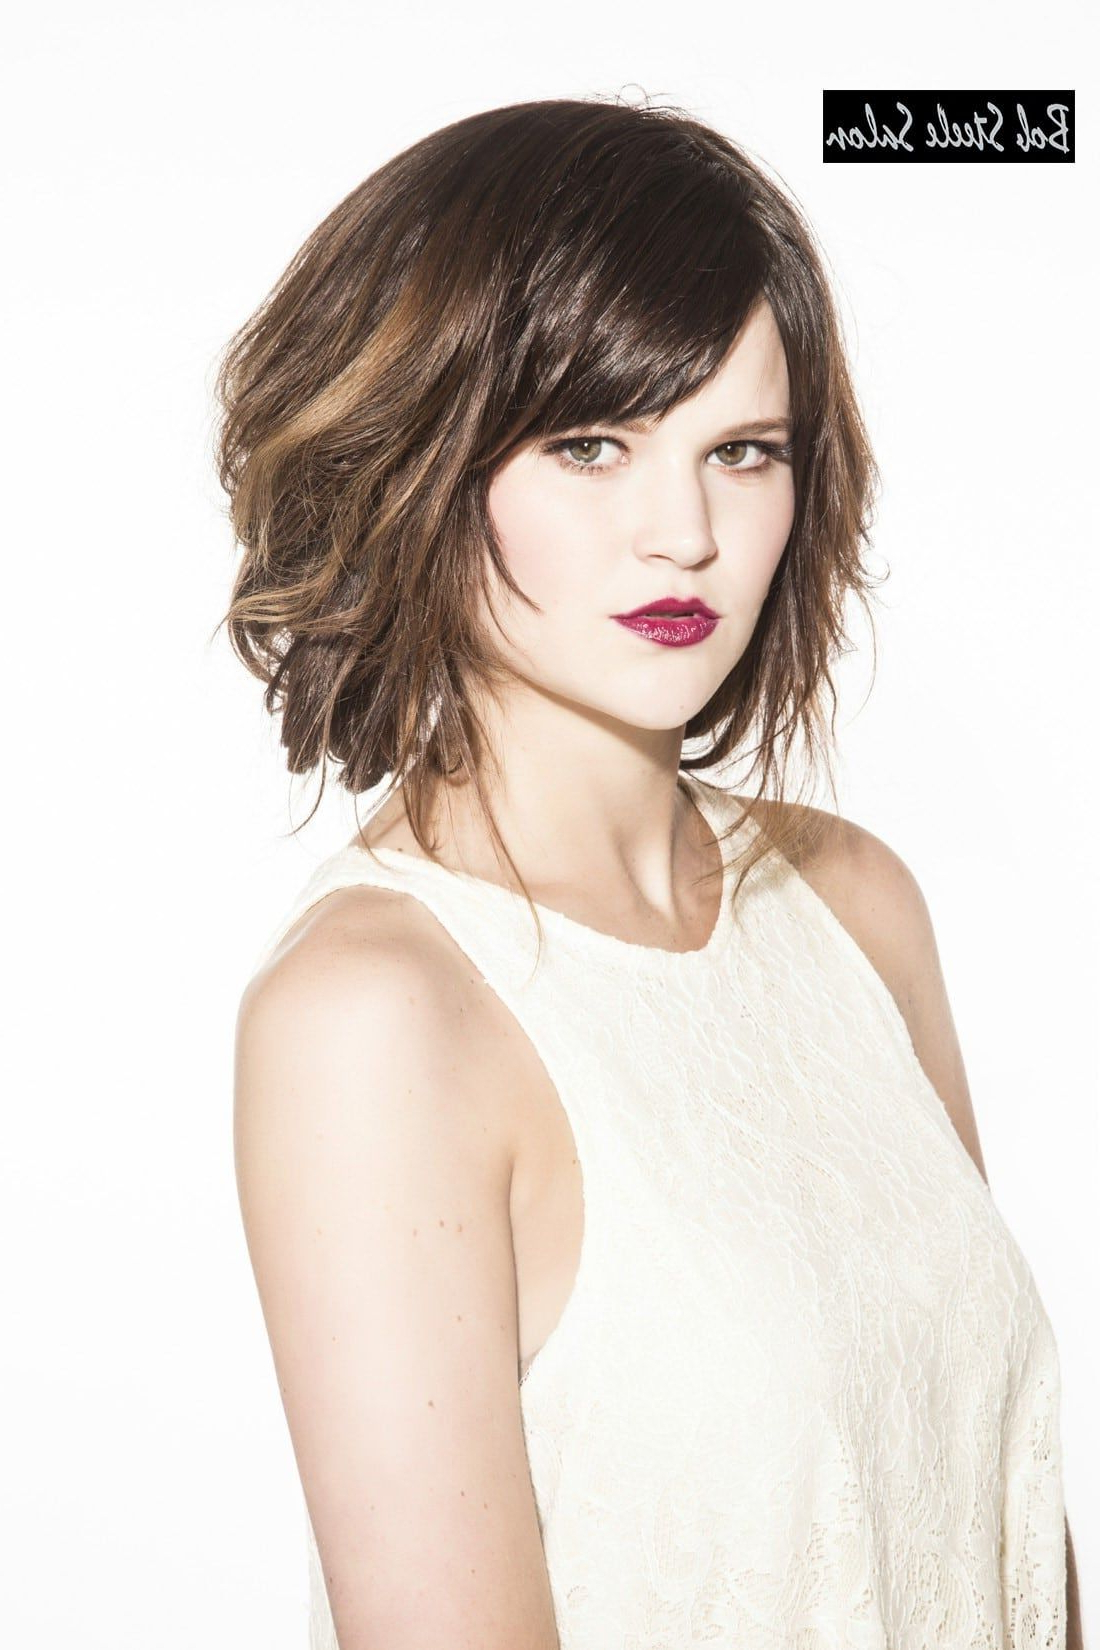 30 Superb Short Hairstyles For Women Over 40 | Hair | Pinterest Pertaining To Short Hairstyles For Thick Hair Over (View 25 of 25)